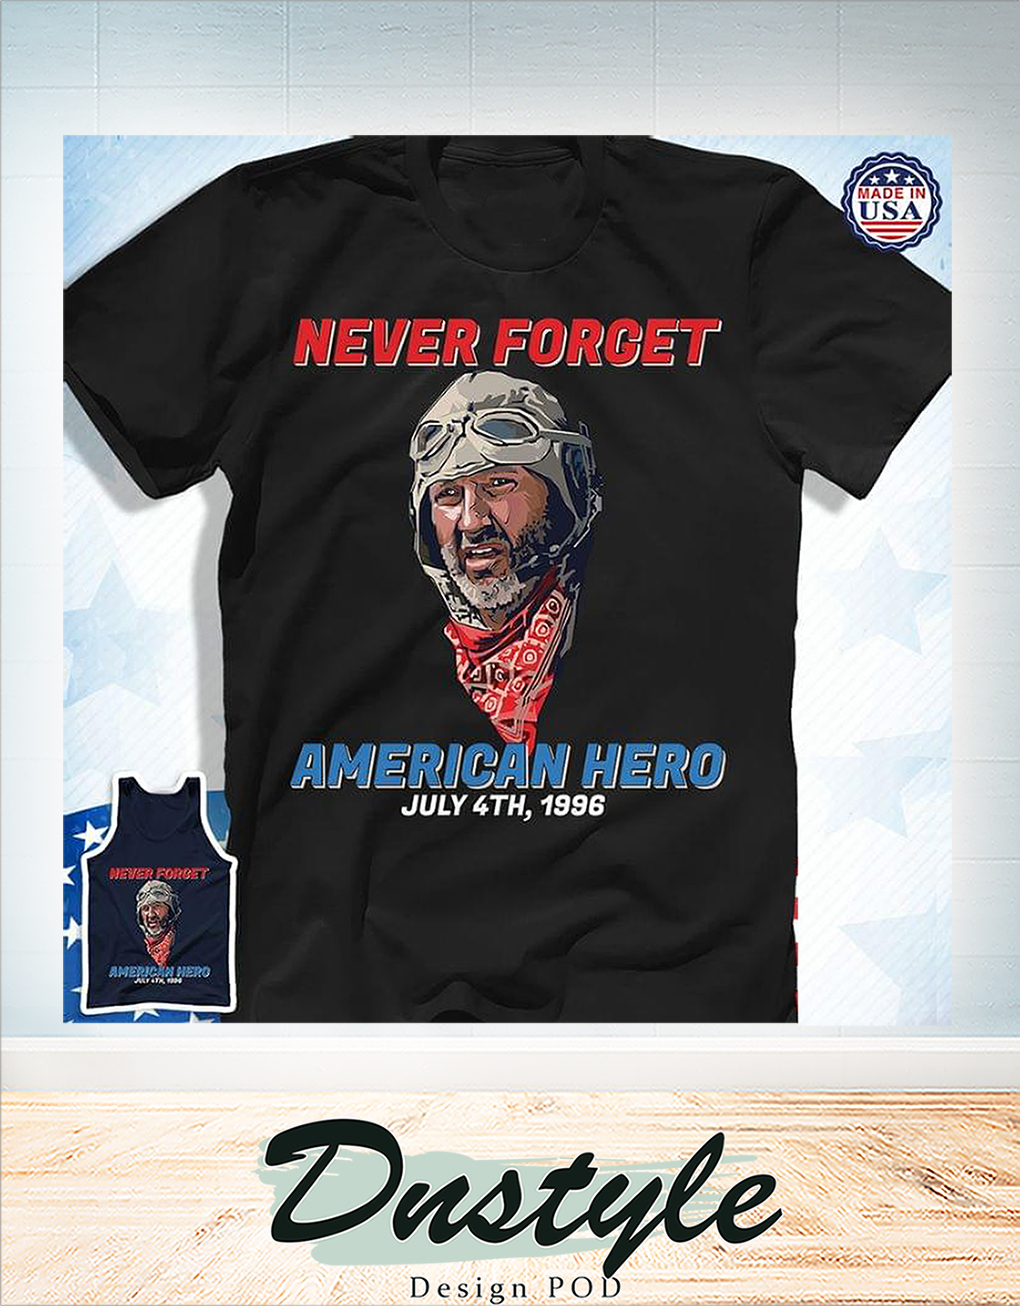 Never forget american hero july 4th 1986 t-shirt 3